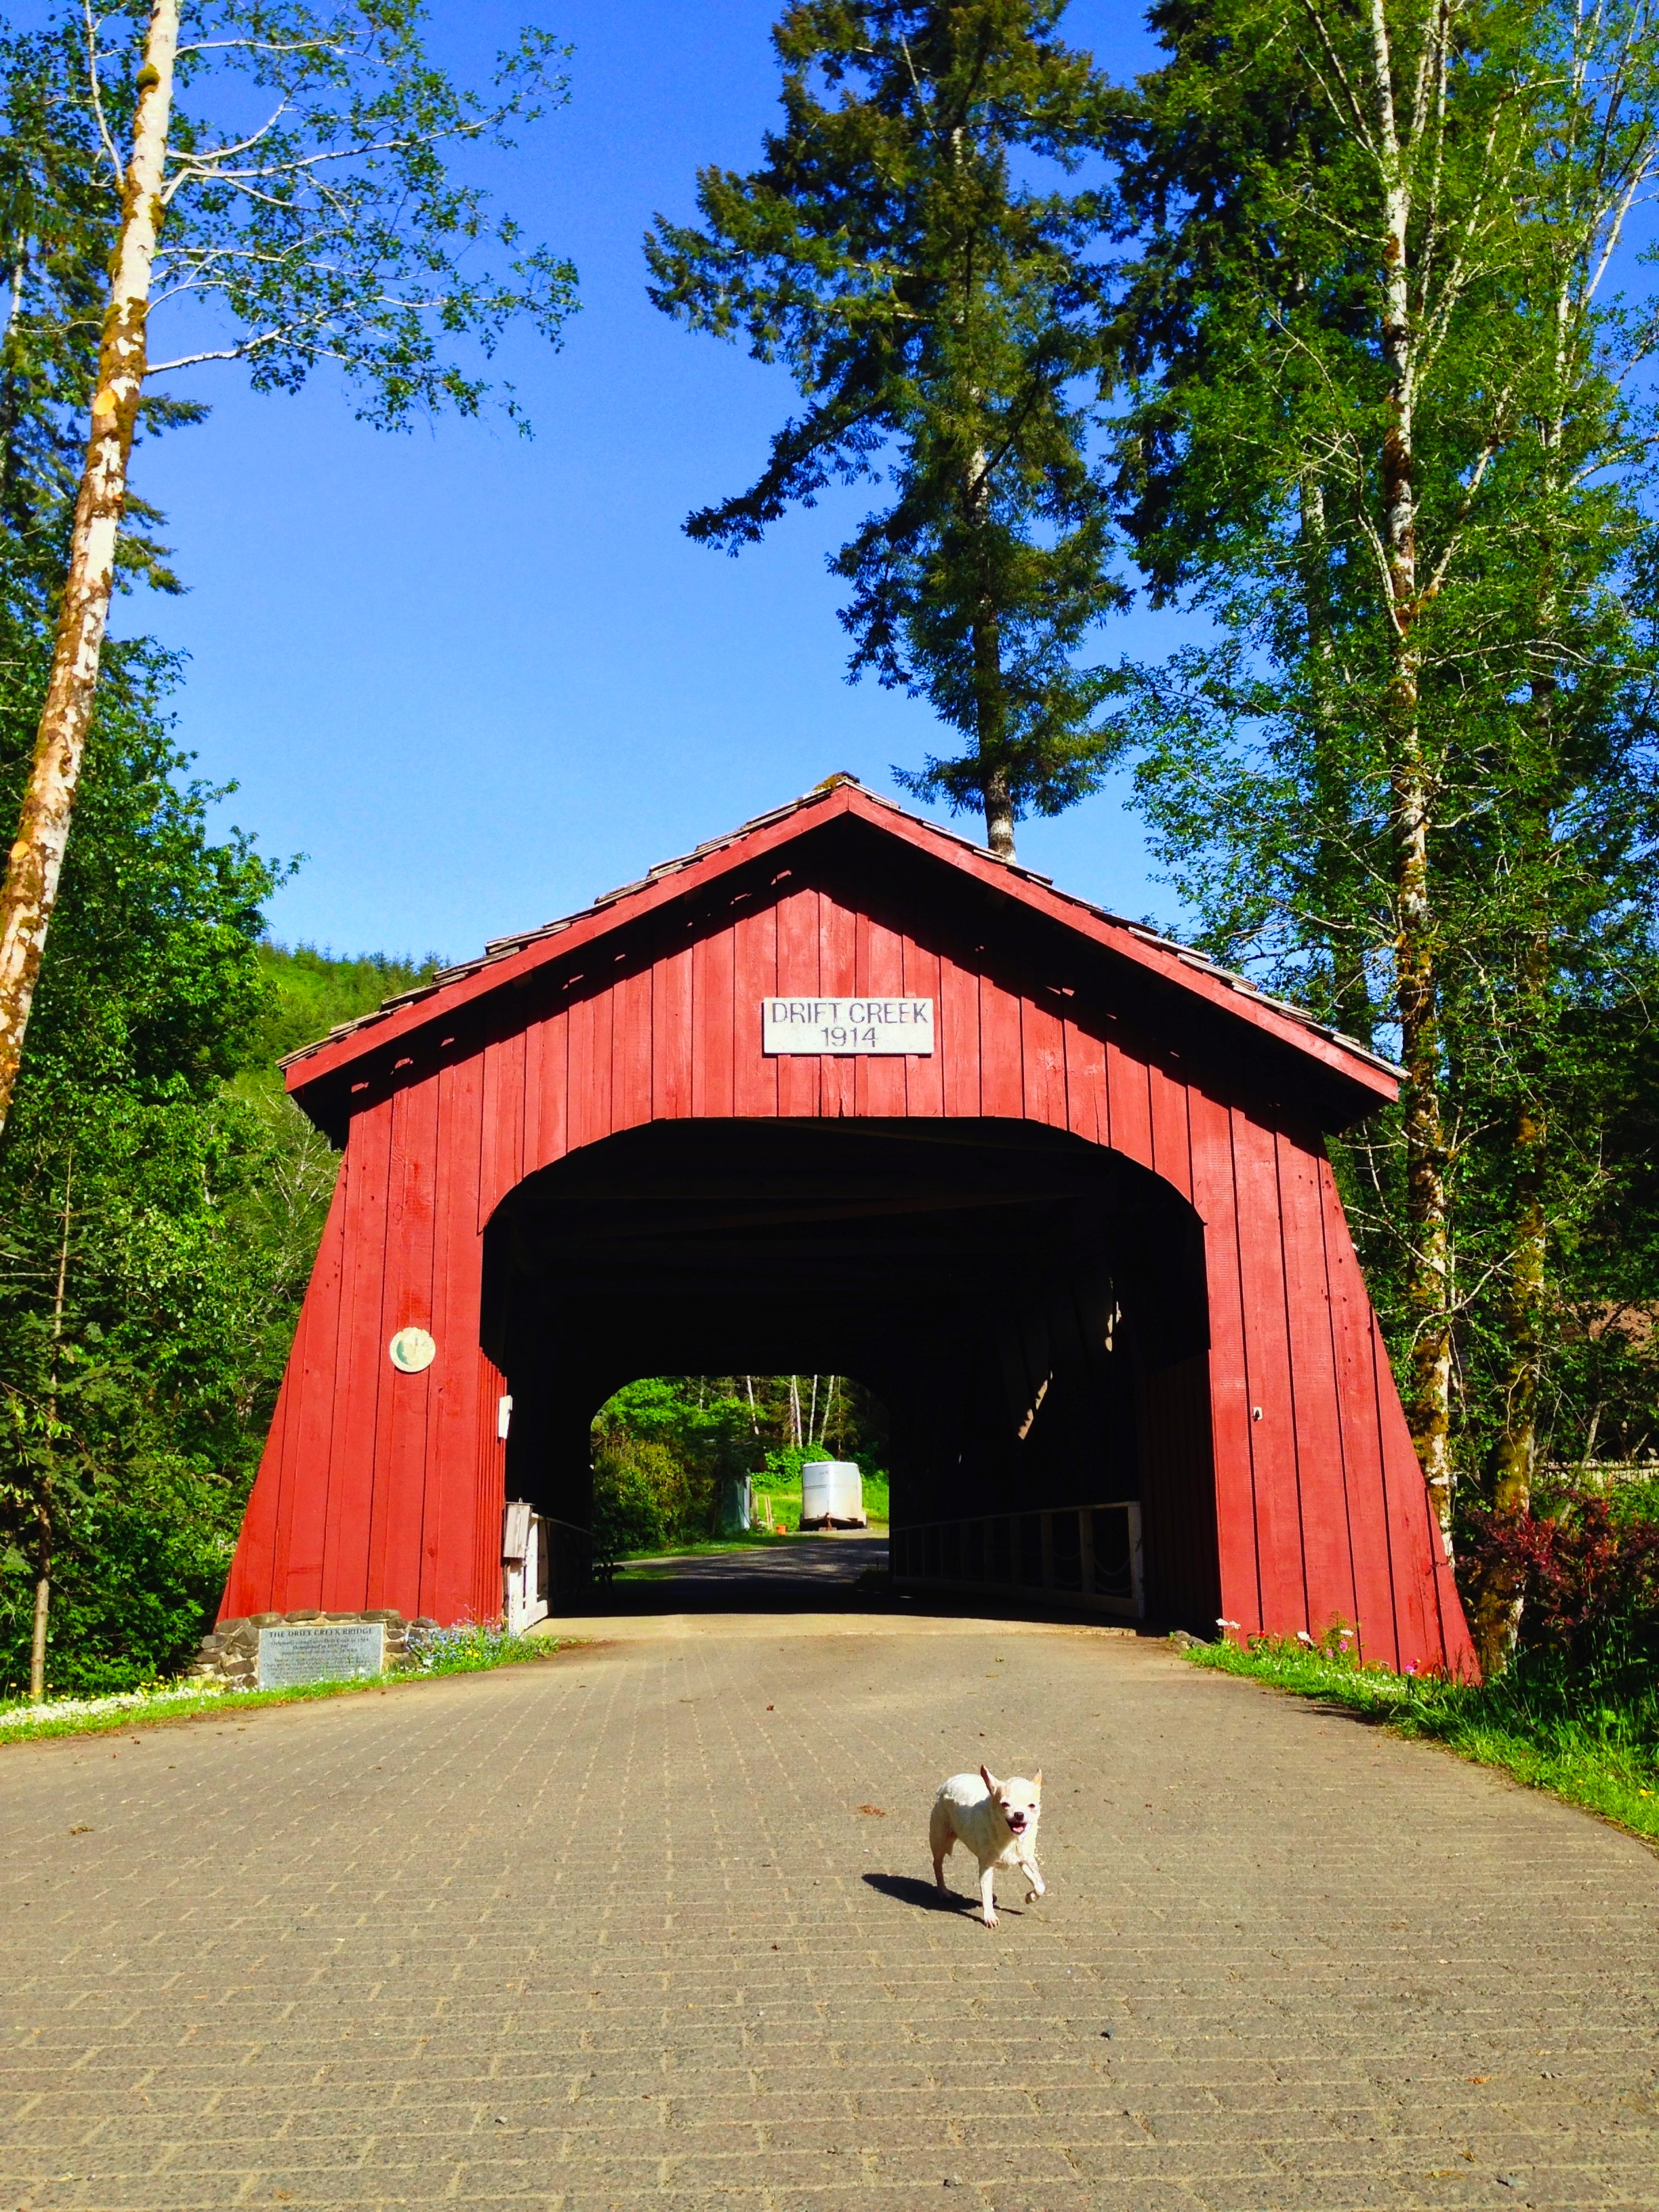 Drift Creek Covered Bridge, Lincoln County, OR